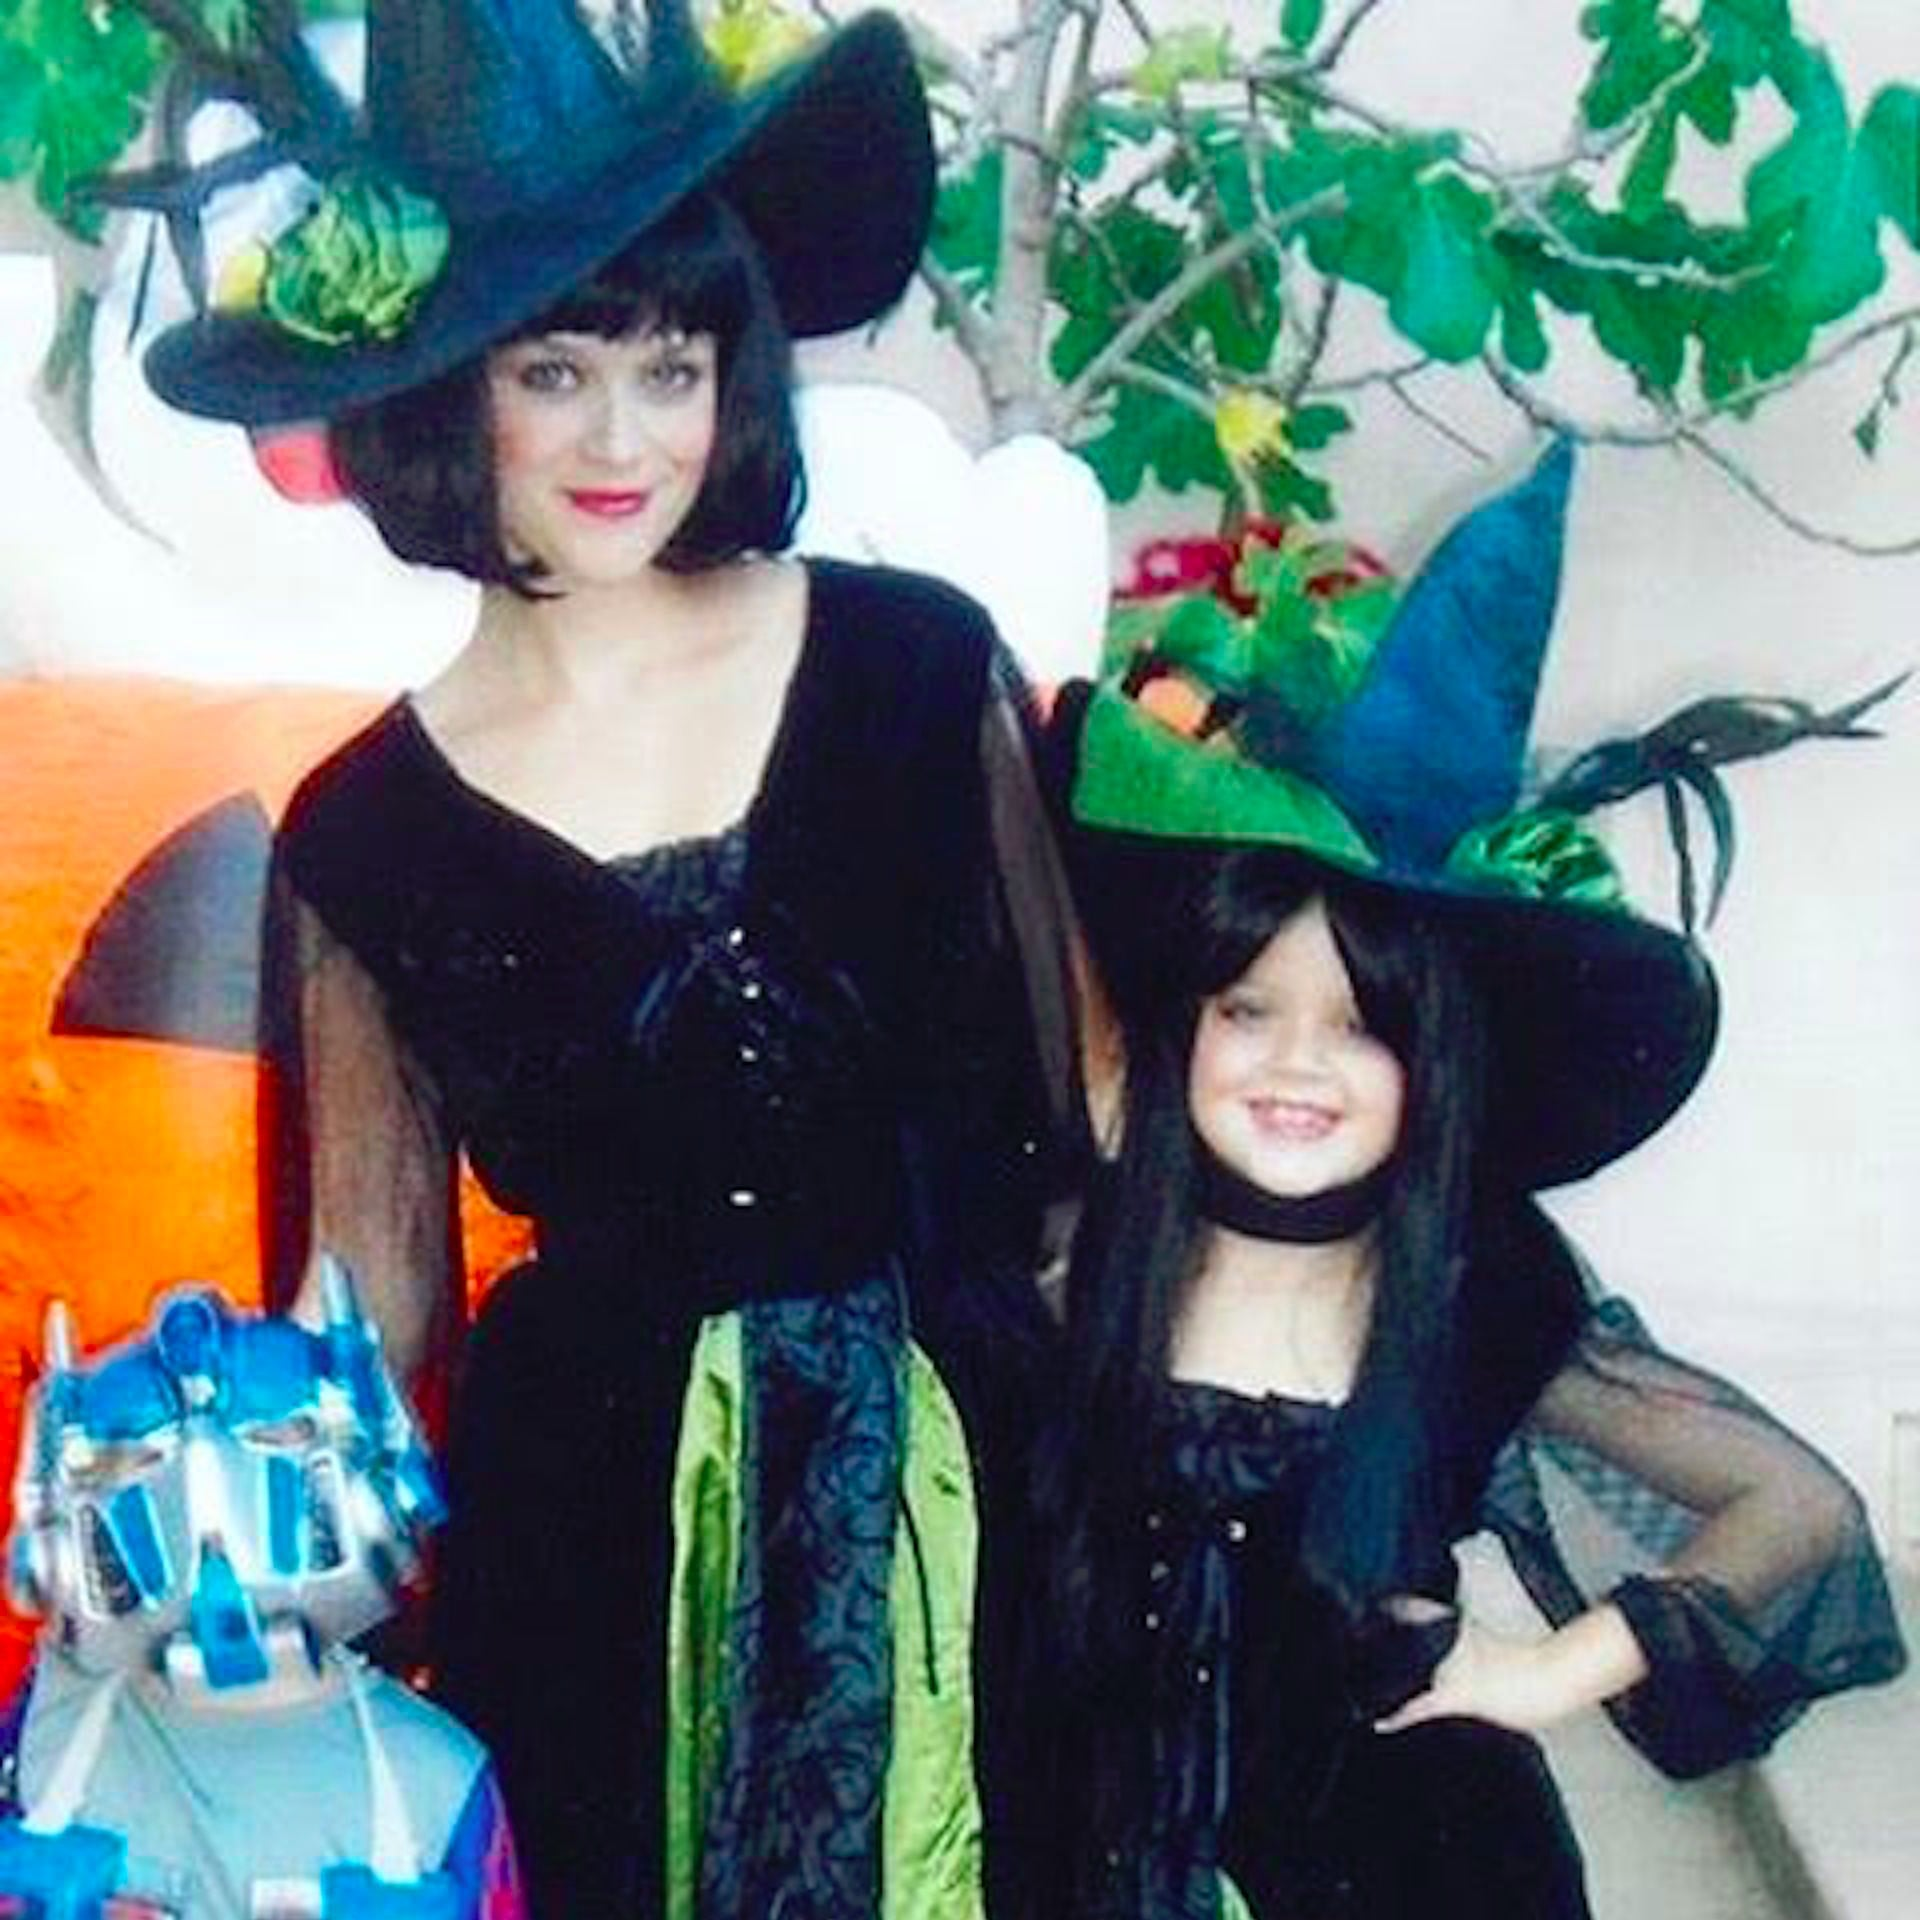 Reese Witherspoon Throwback Halloween Instagram Photo 2016 ...